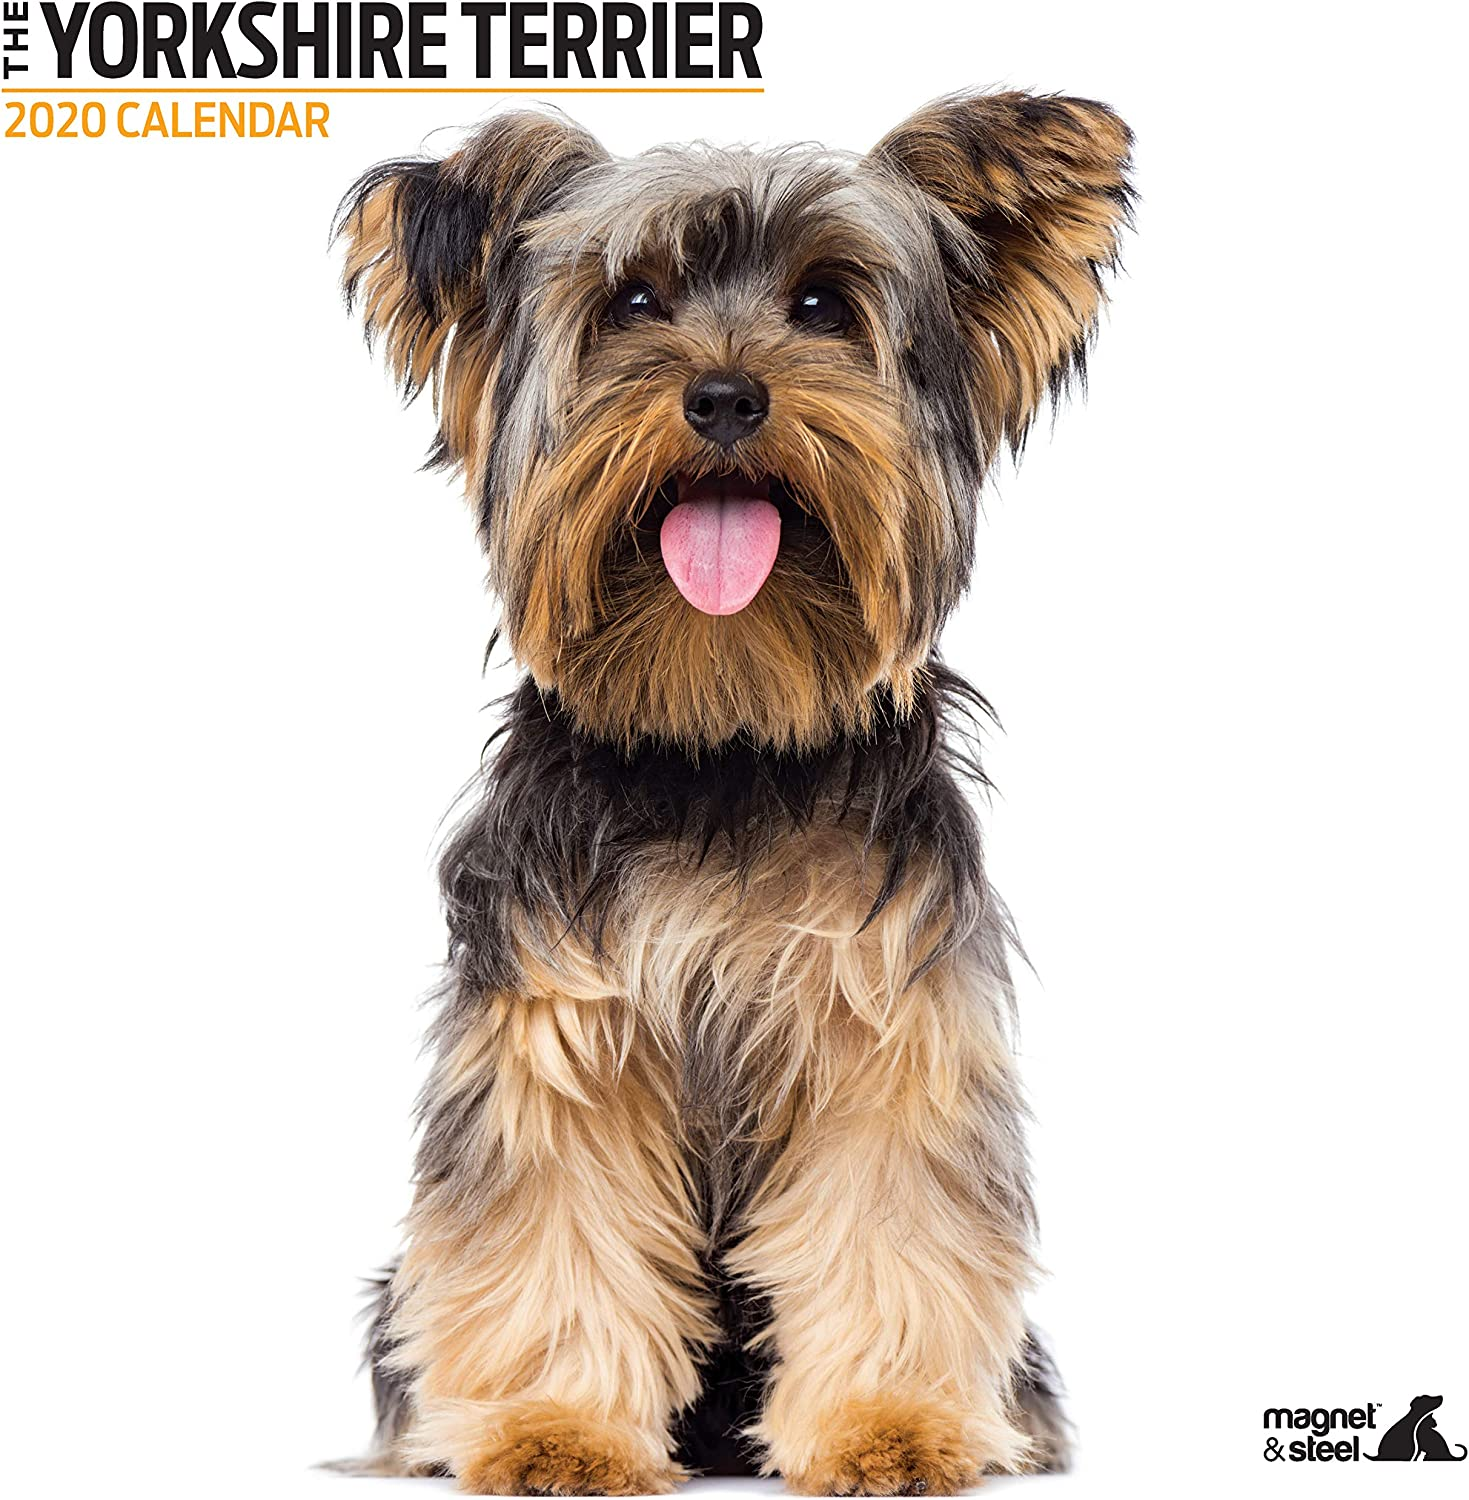 Yorkshire Terrier Modern 2020 Calendar Amazon Co Uk Office Products